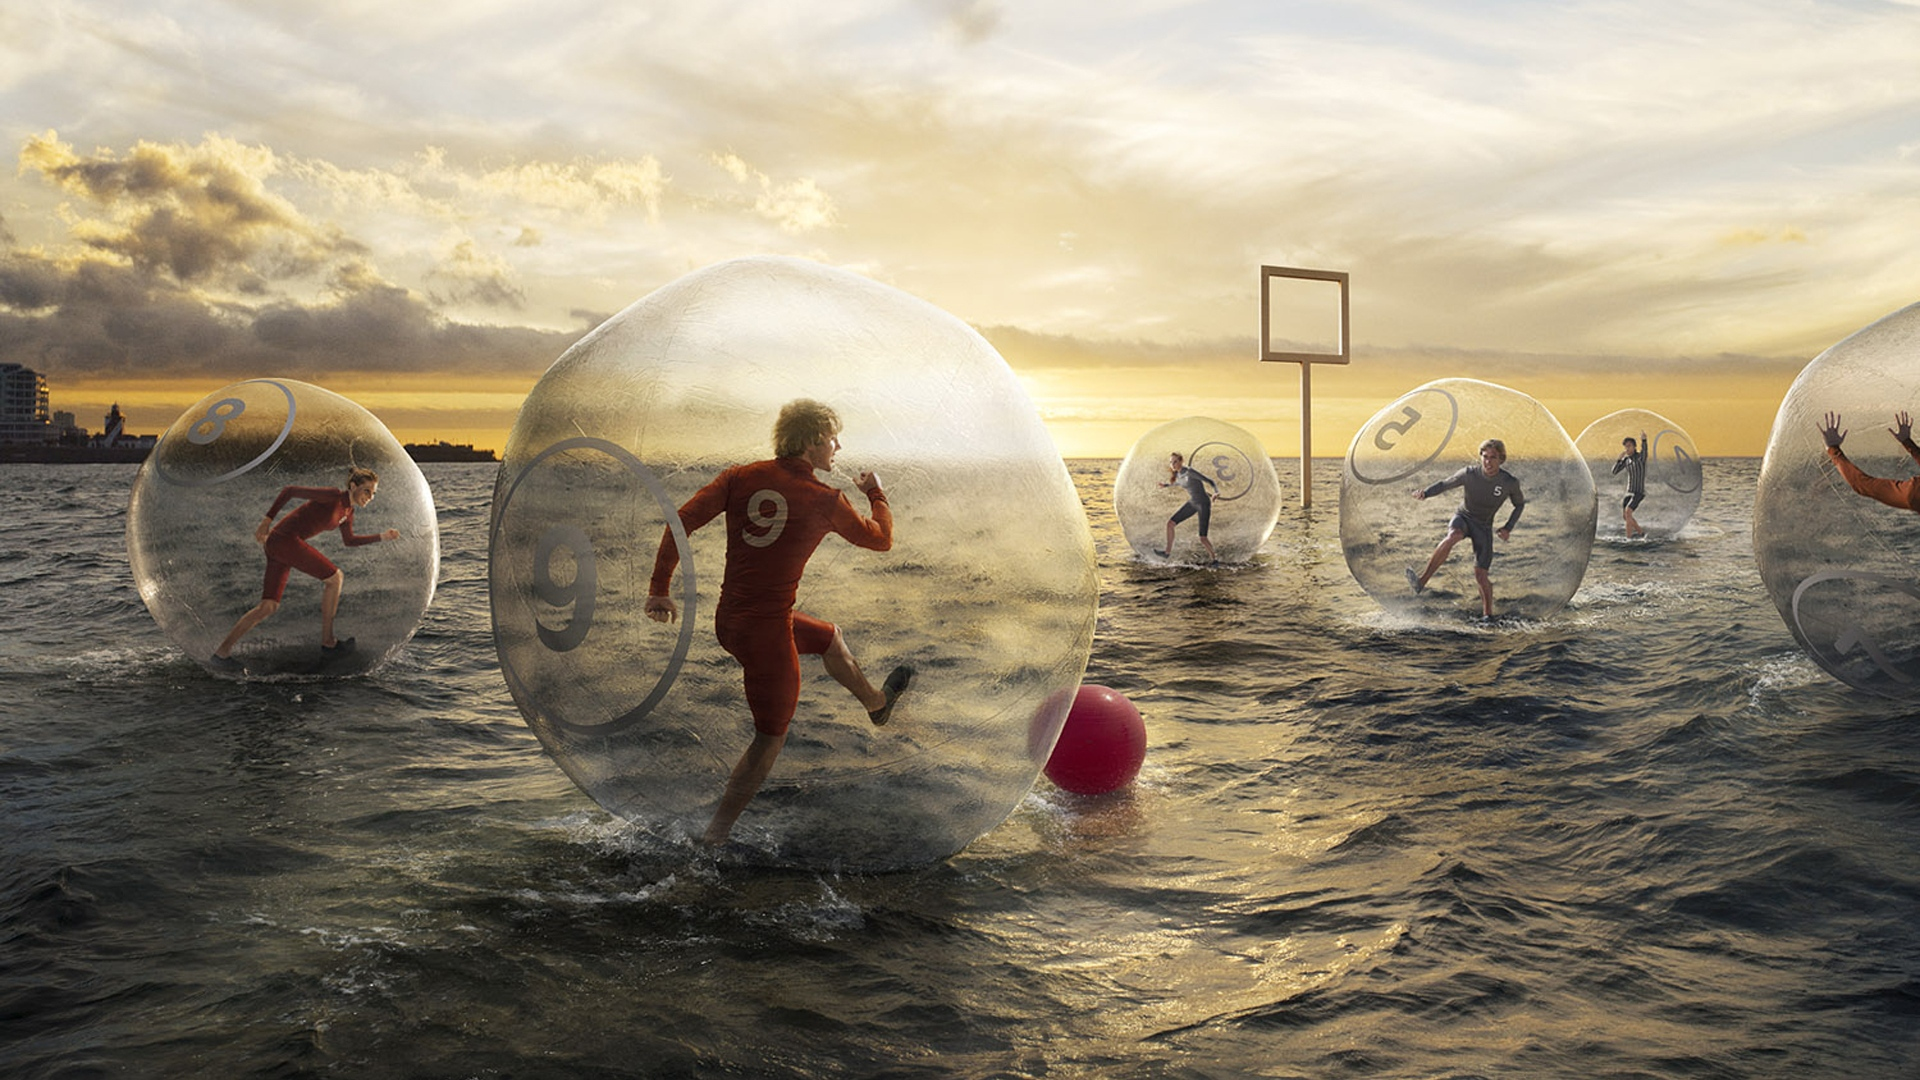 1920x1080-football-water-ball-sky-people-wallpaper-wp340930